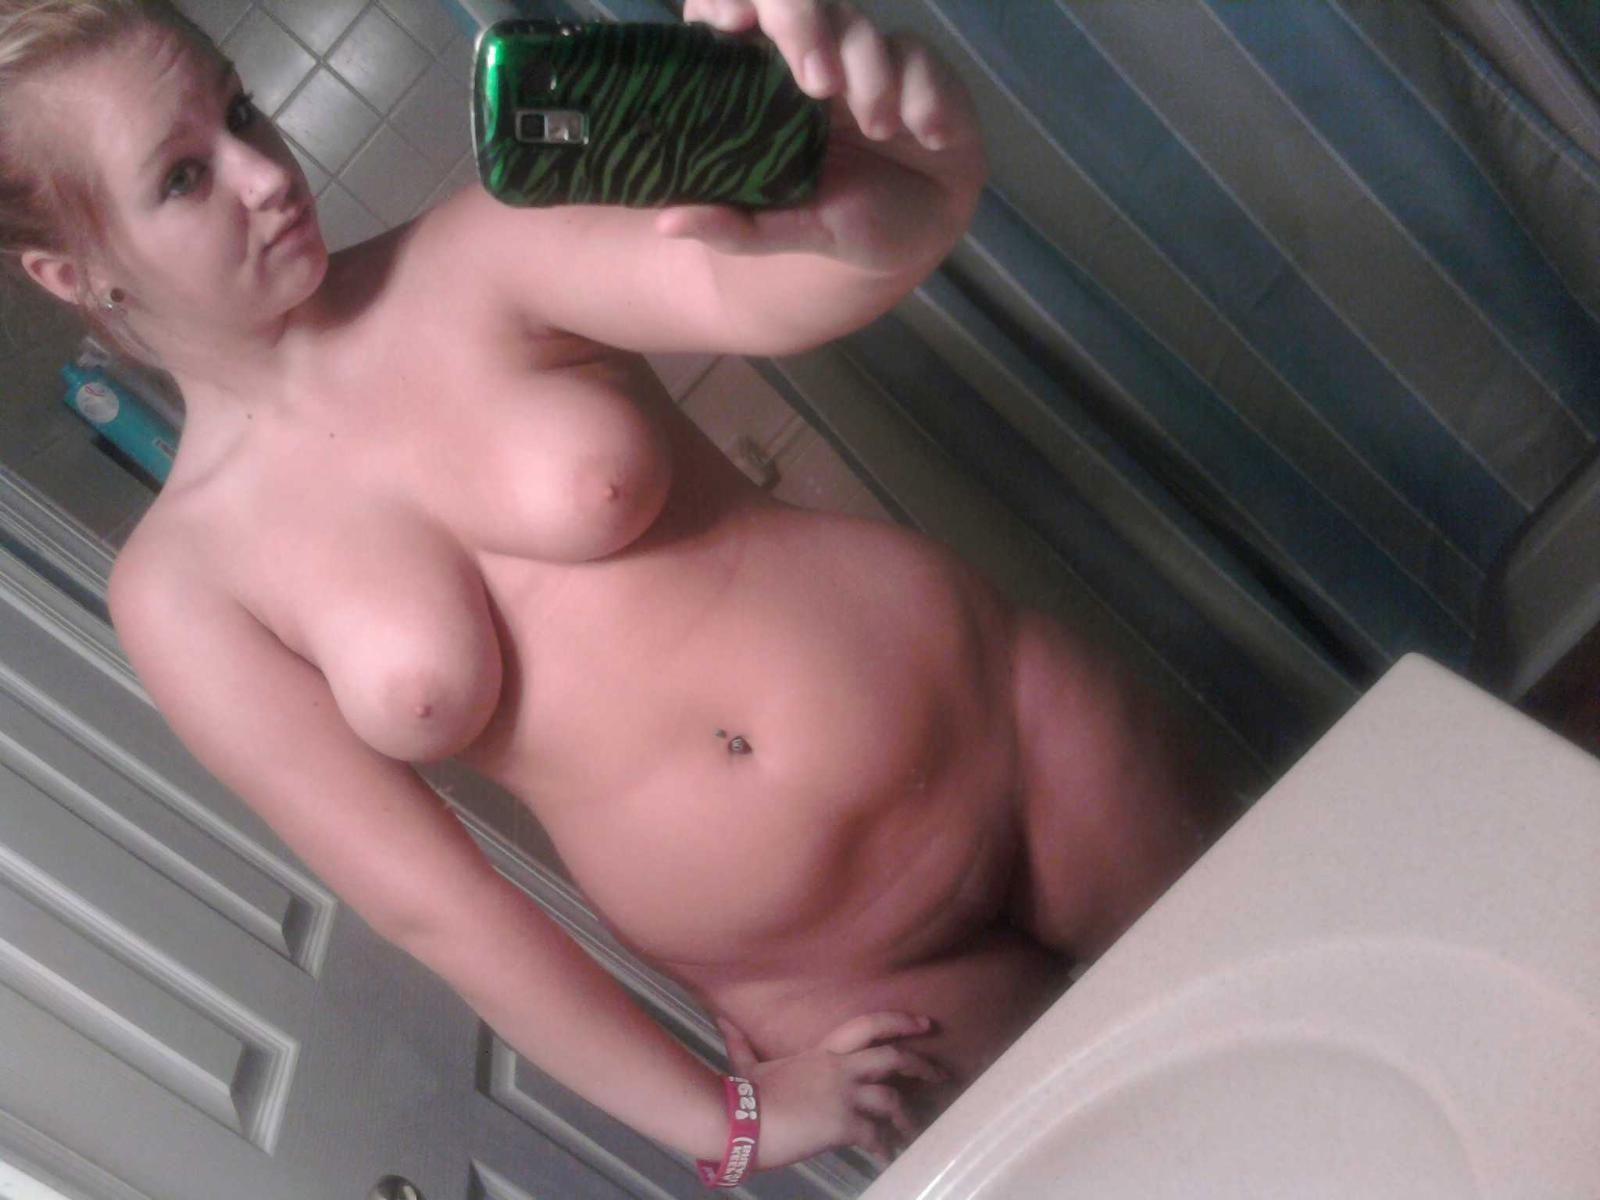 Girls in nude mirror posing